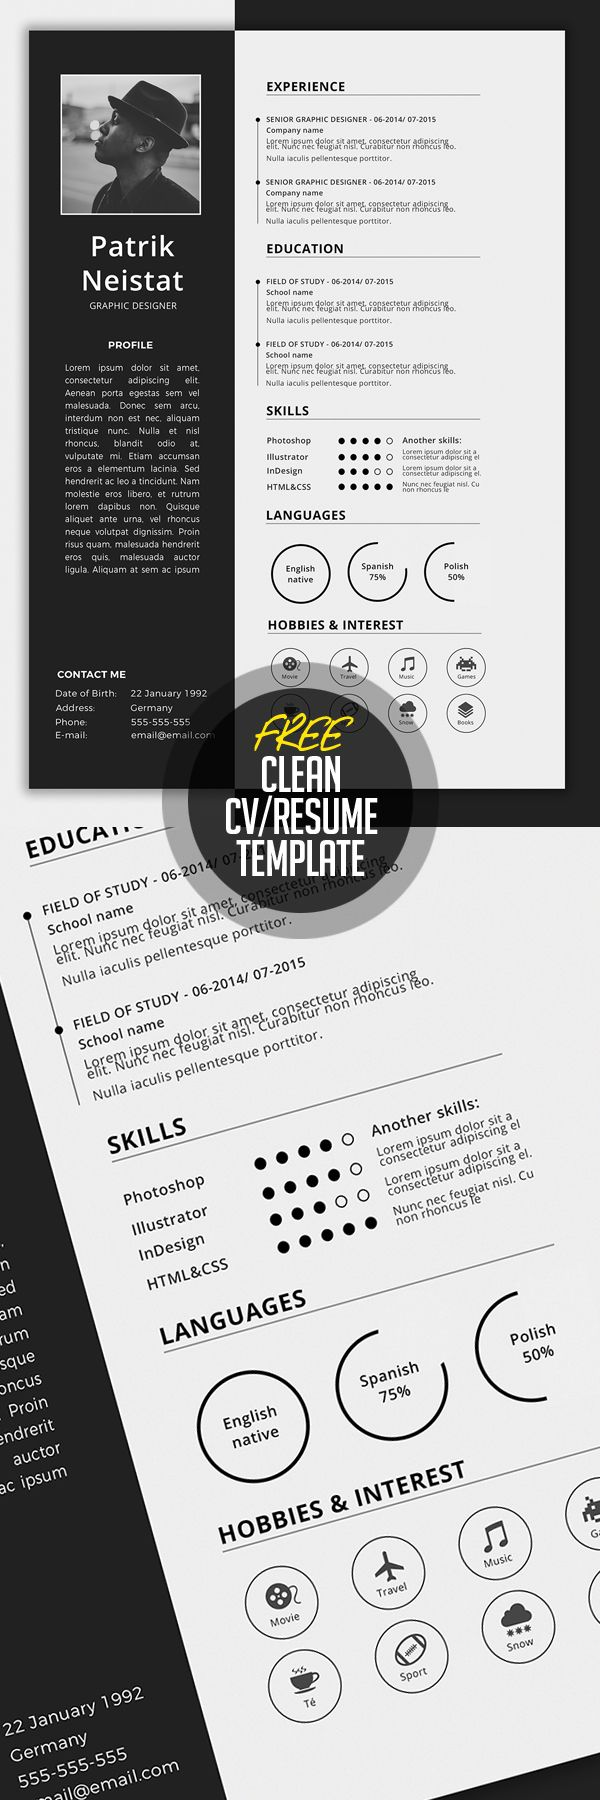 best ideas about resume templates professional resume templates designed a simple minimal and creative style to help any professional to make a lasting impression when applying